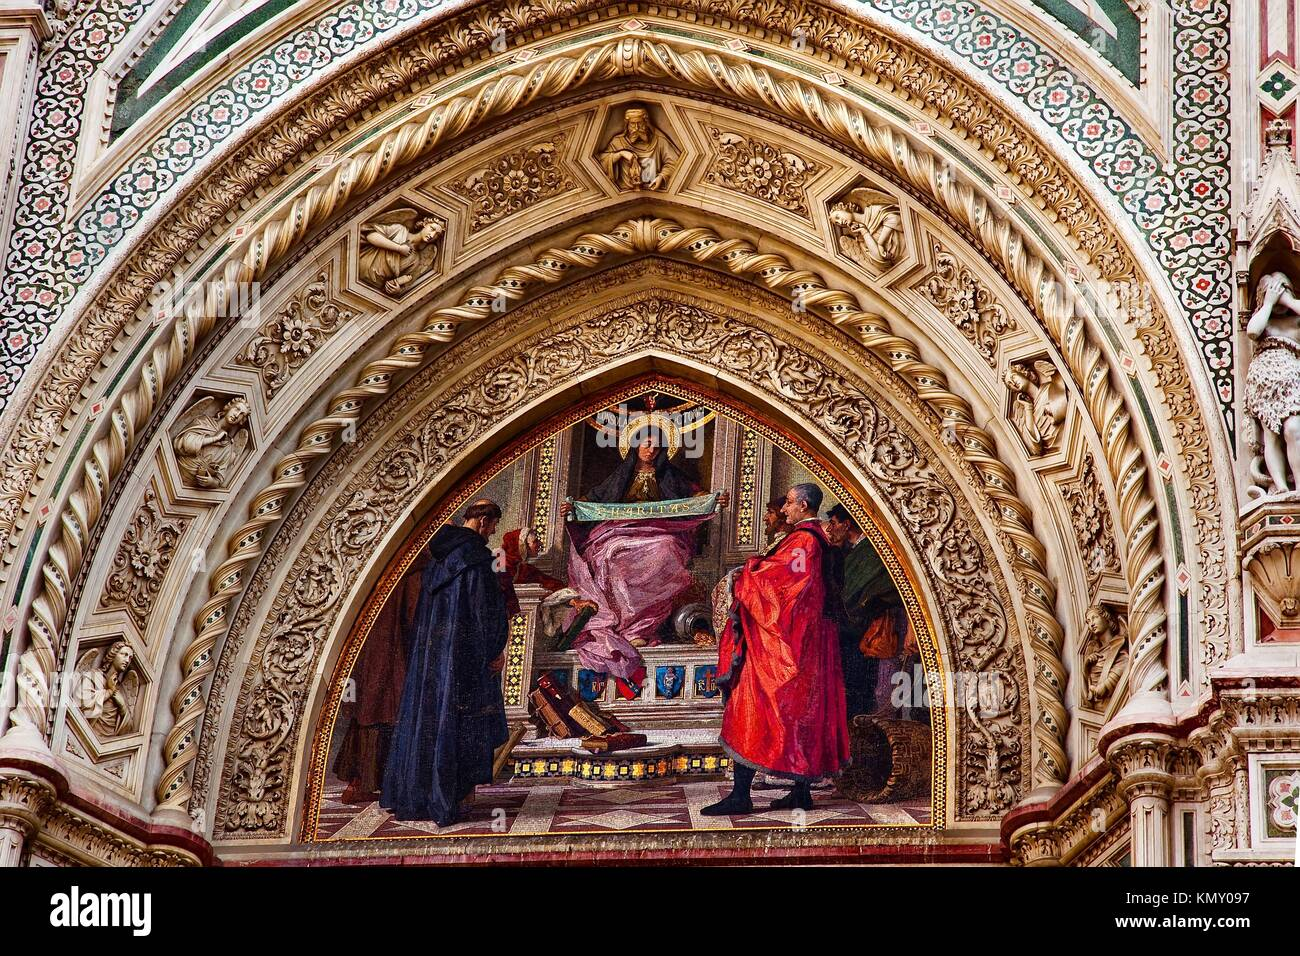 Mary Mosaic Facade Statues, Duomo Basilica Cathedral Church Florence Italy - Stock Image